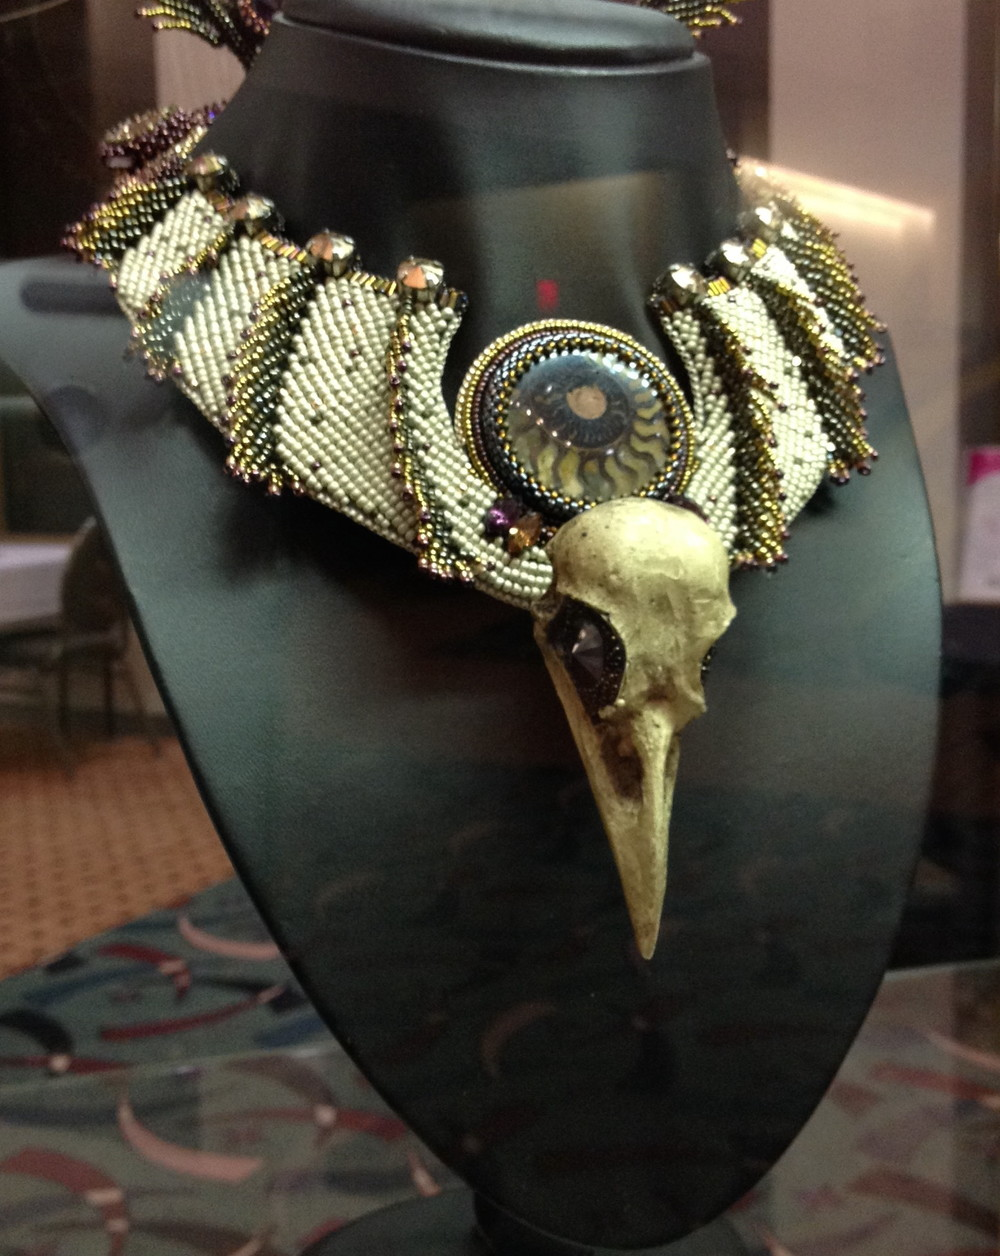 This is just a portion of the finished piece. It had very long feathers coming off the back of the necklace which extended up and over the top of the wearer's head by perhaps a foot or so. I think this was the year of the skulls.